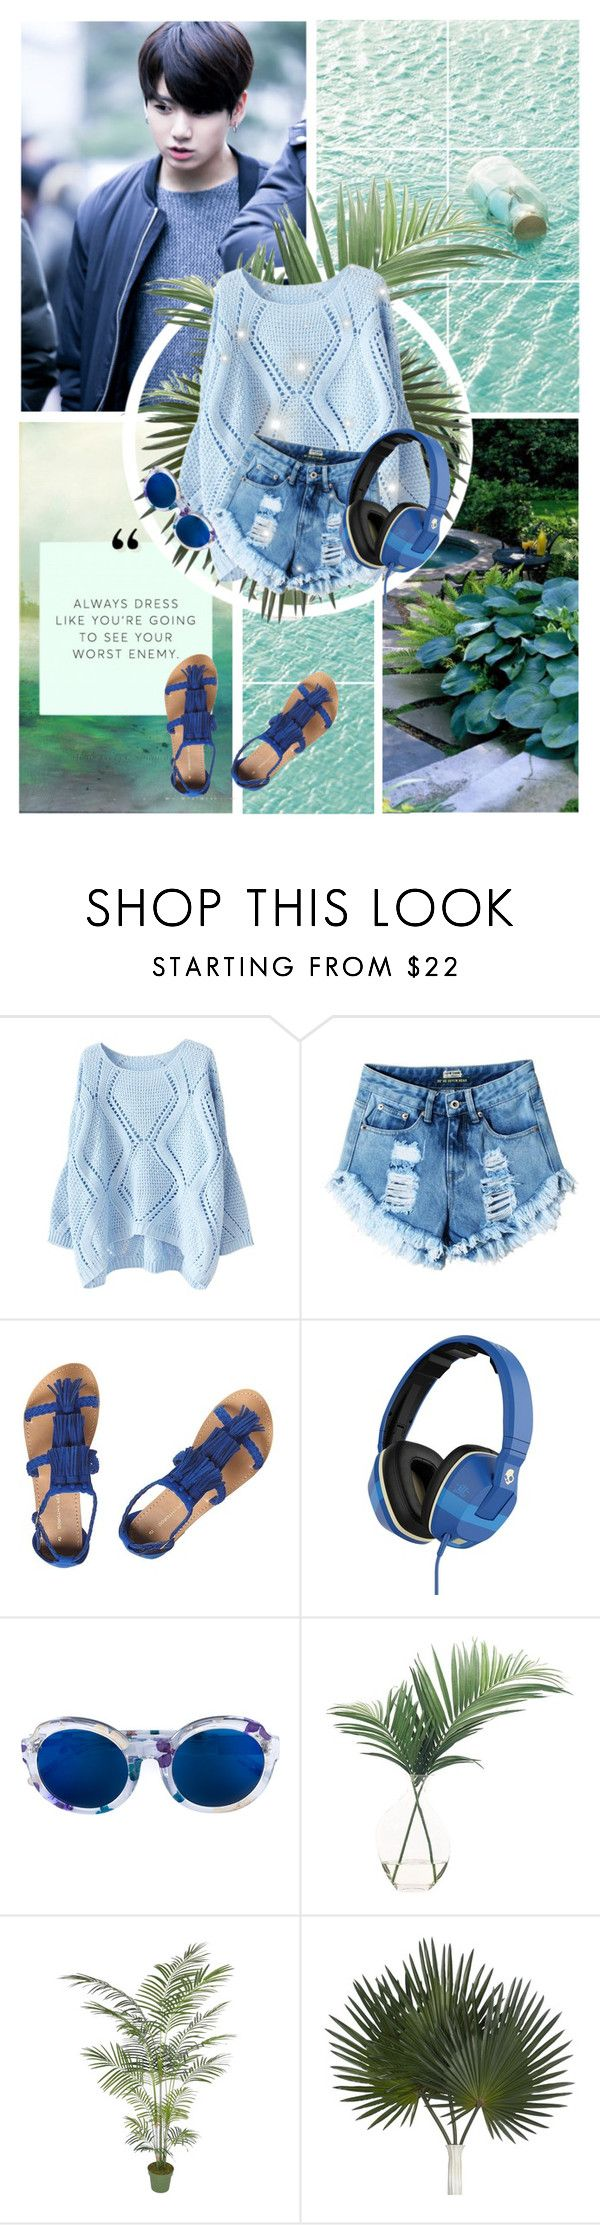 """Wherever I Go"" by janiaame ❤ liked on Polyvore featuring Dorothy Perkins, Skullcandy, Linda Farrow, NDI, kpop, denimshorts, summerdate, summer2016 and janiamania"